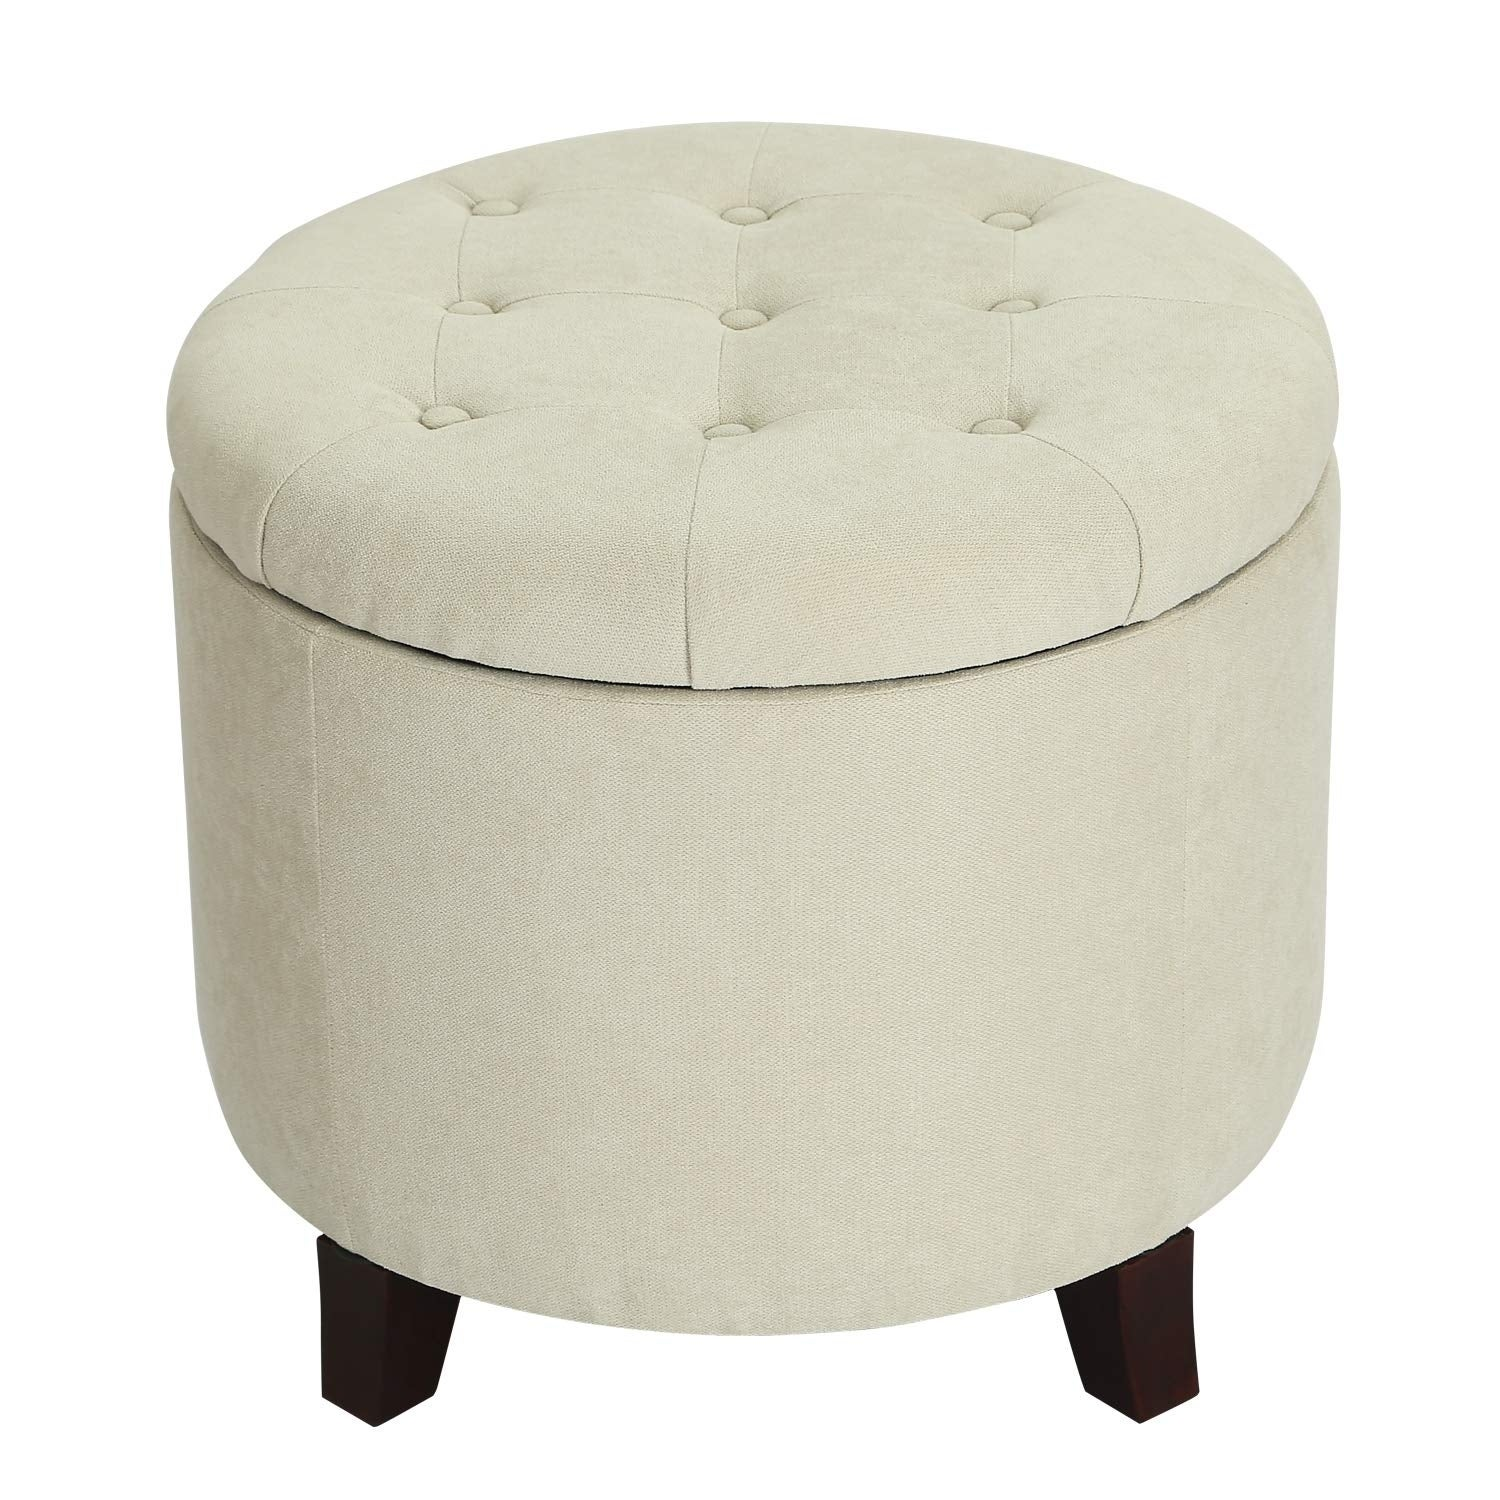 Picture of: Adeco Fabric Cushion Round Button Tufted Lift Top Storage Ottoman Footstool Height 17 Inches Natural Fabric On Sale Overstock 28776119